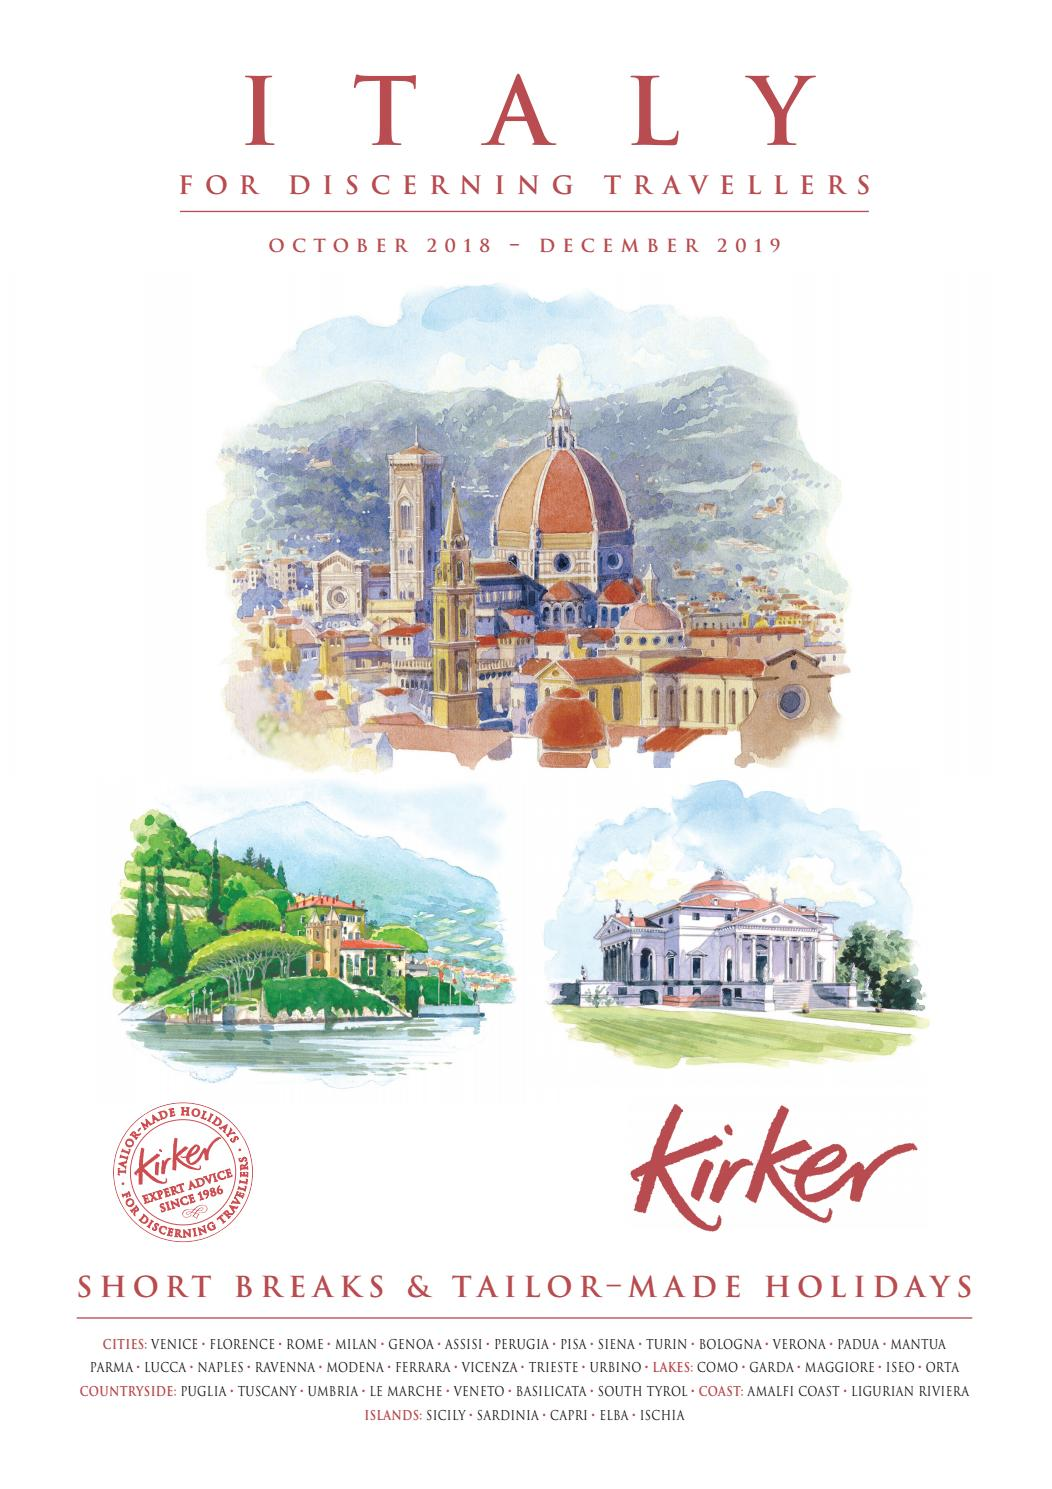 Guest House Soggiorno Monaco Firenze Italy For Discerning Travellers 2019 Kirker Holidays